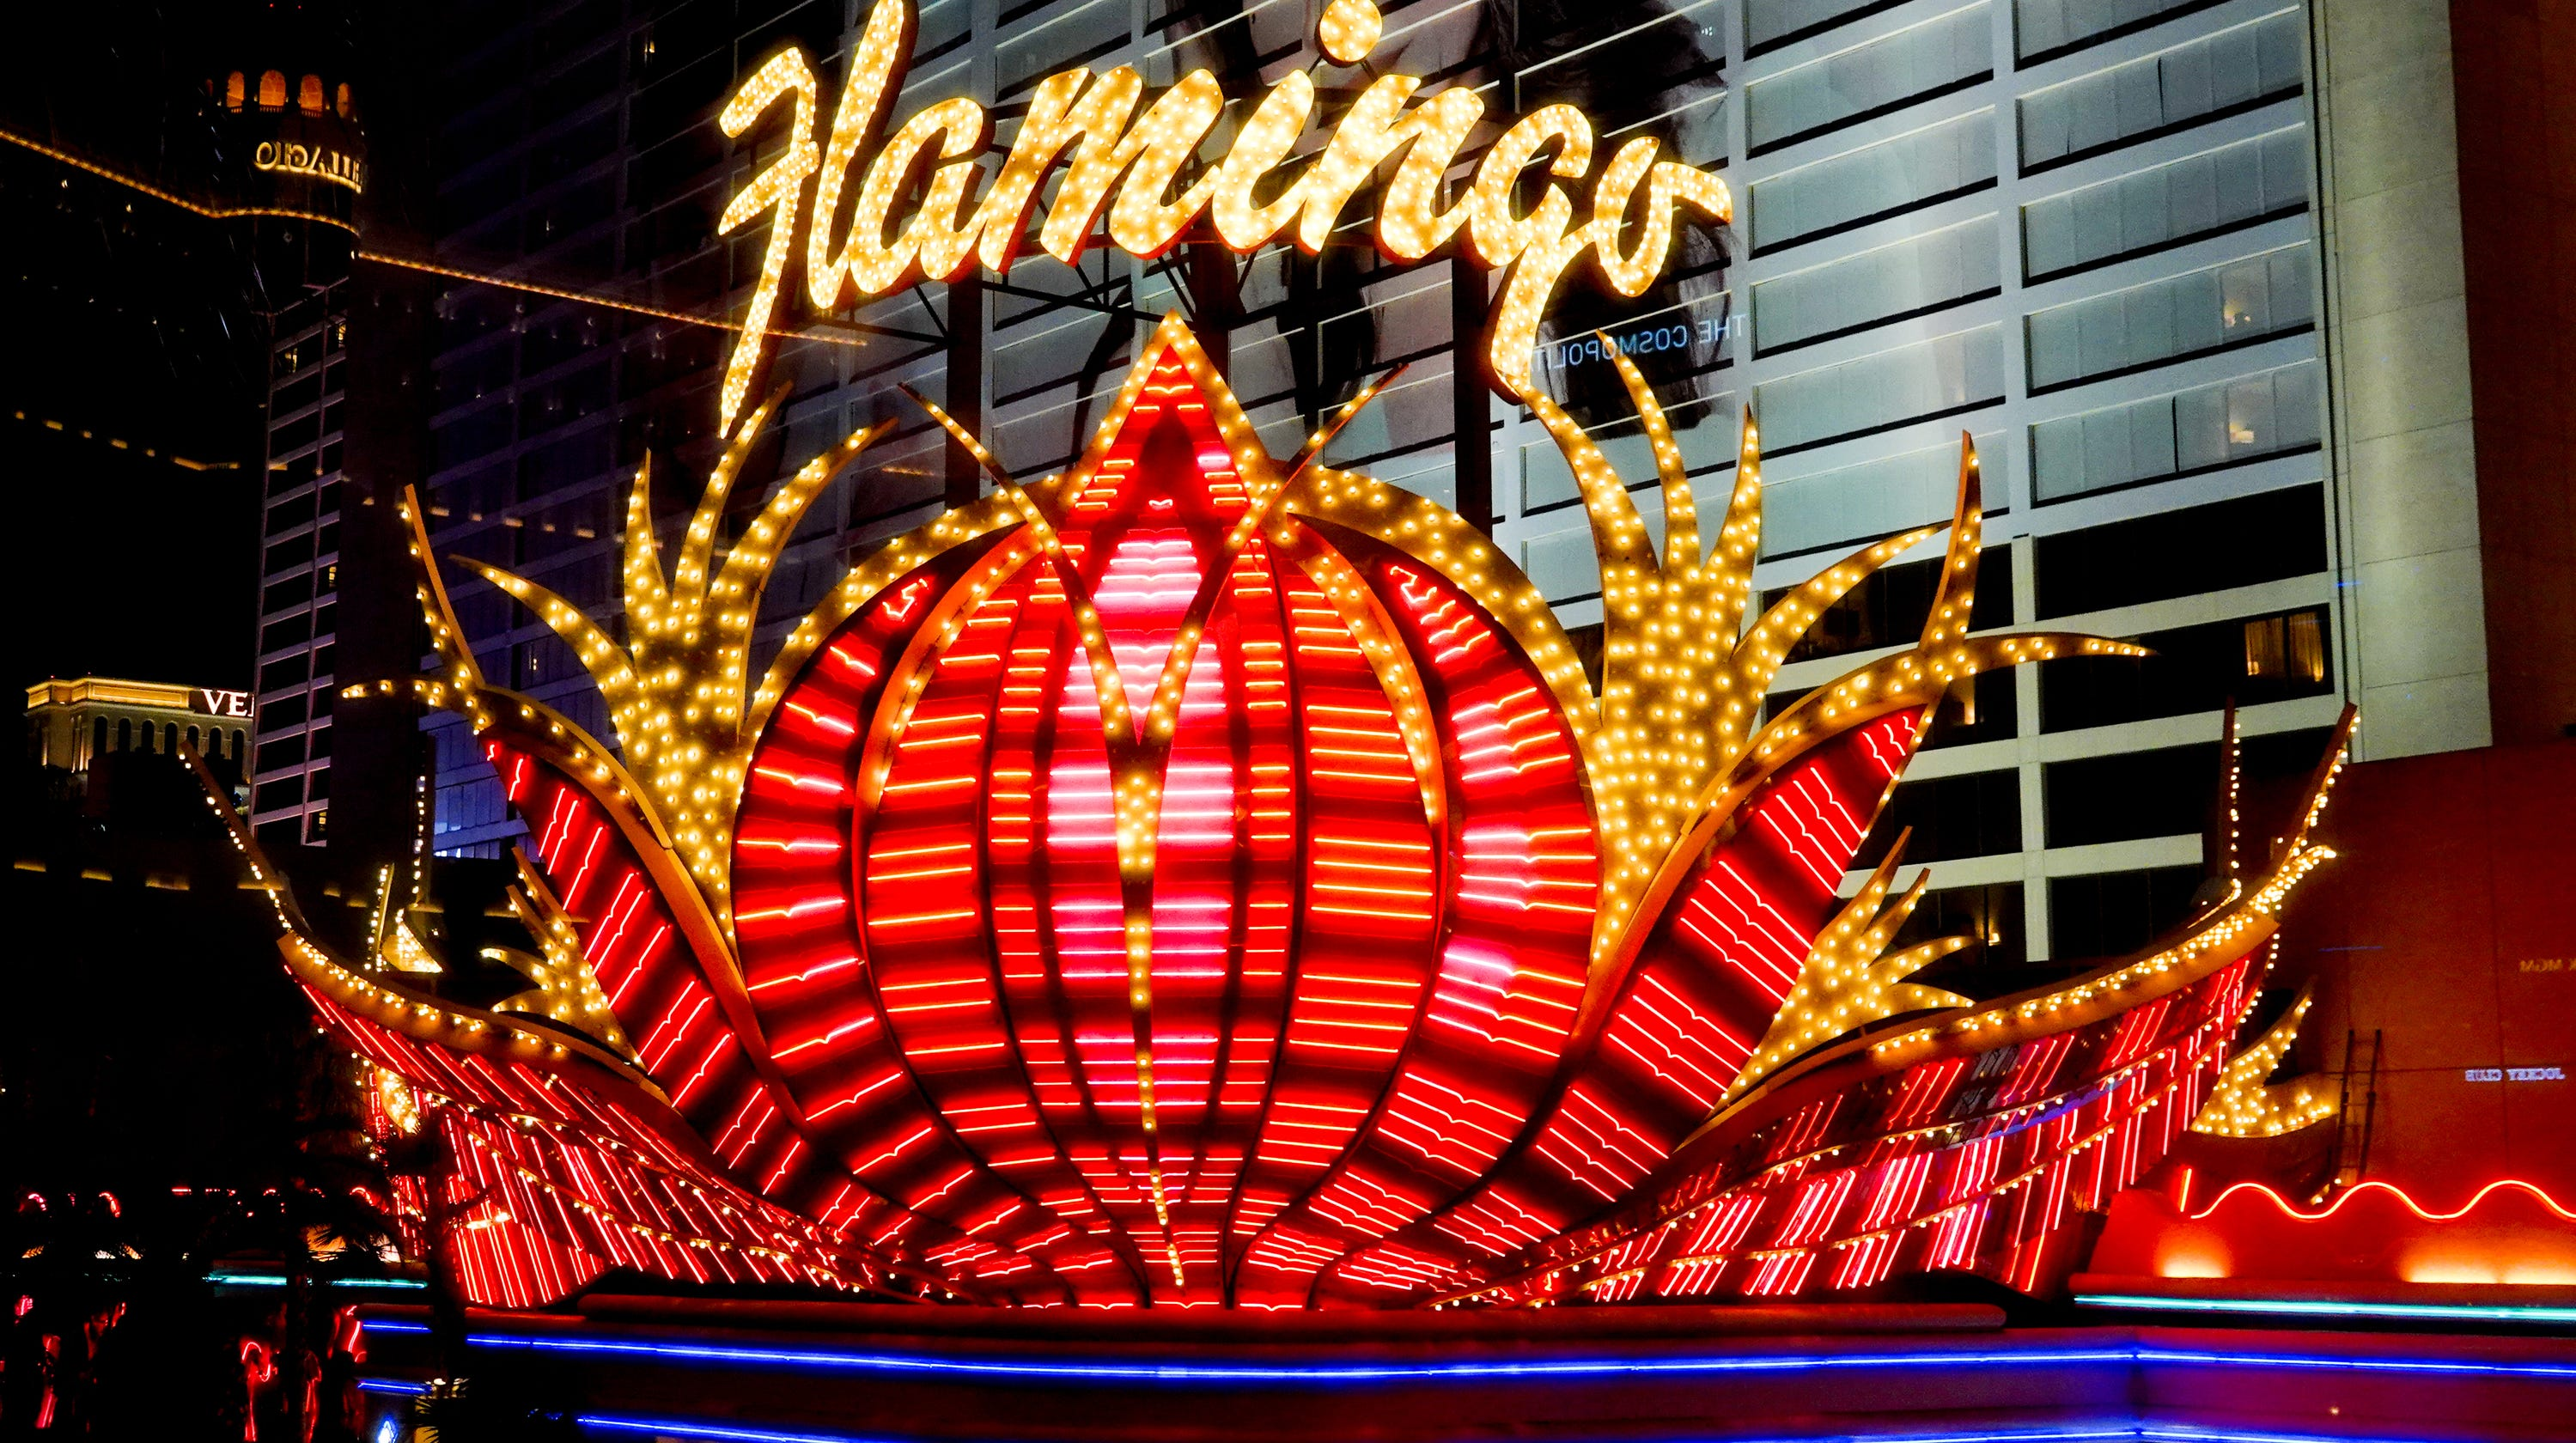 Las Vegas neon: Where to find the classic hotel signs